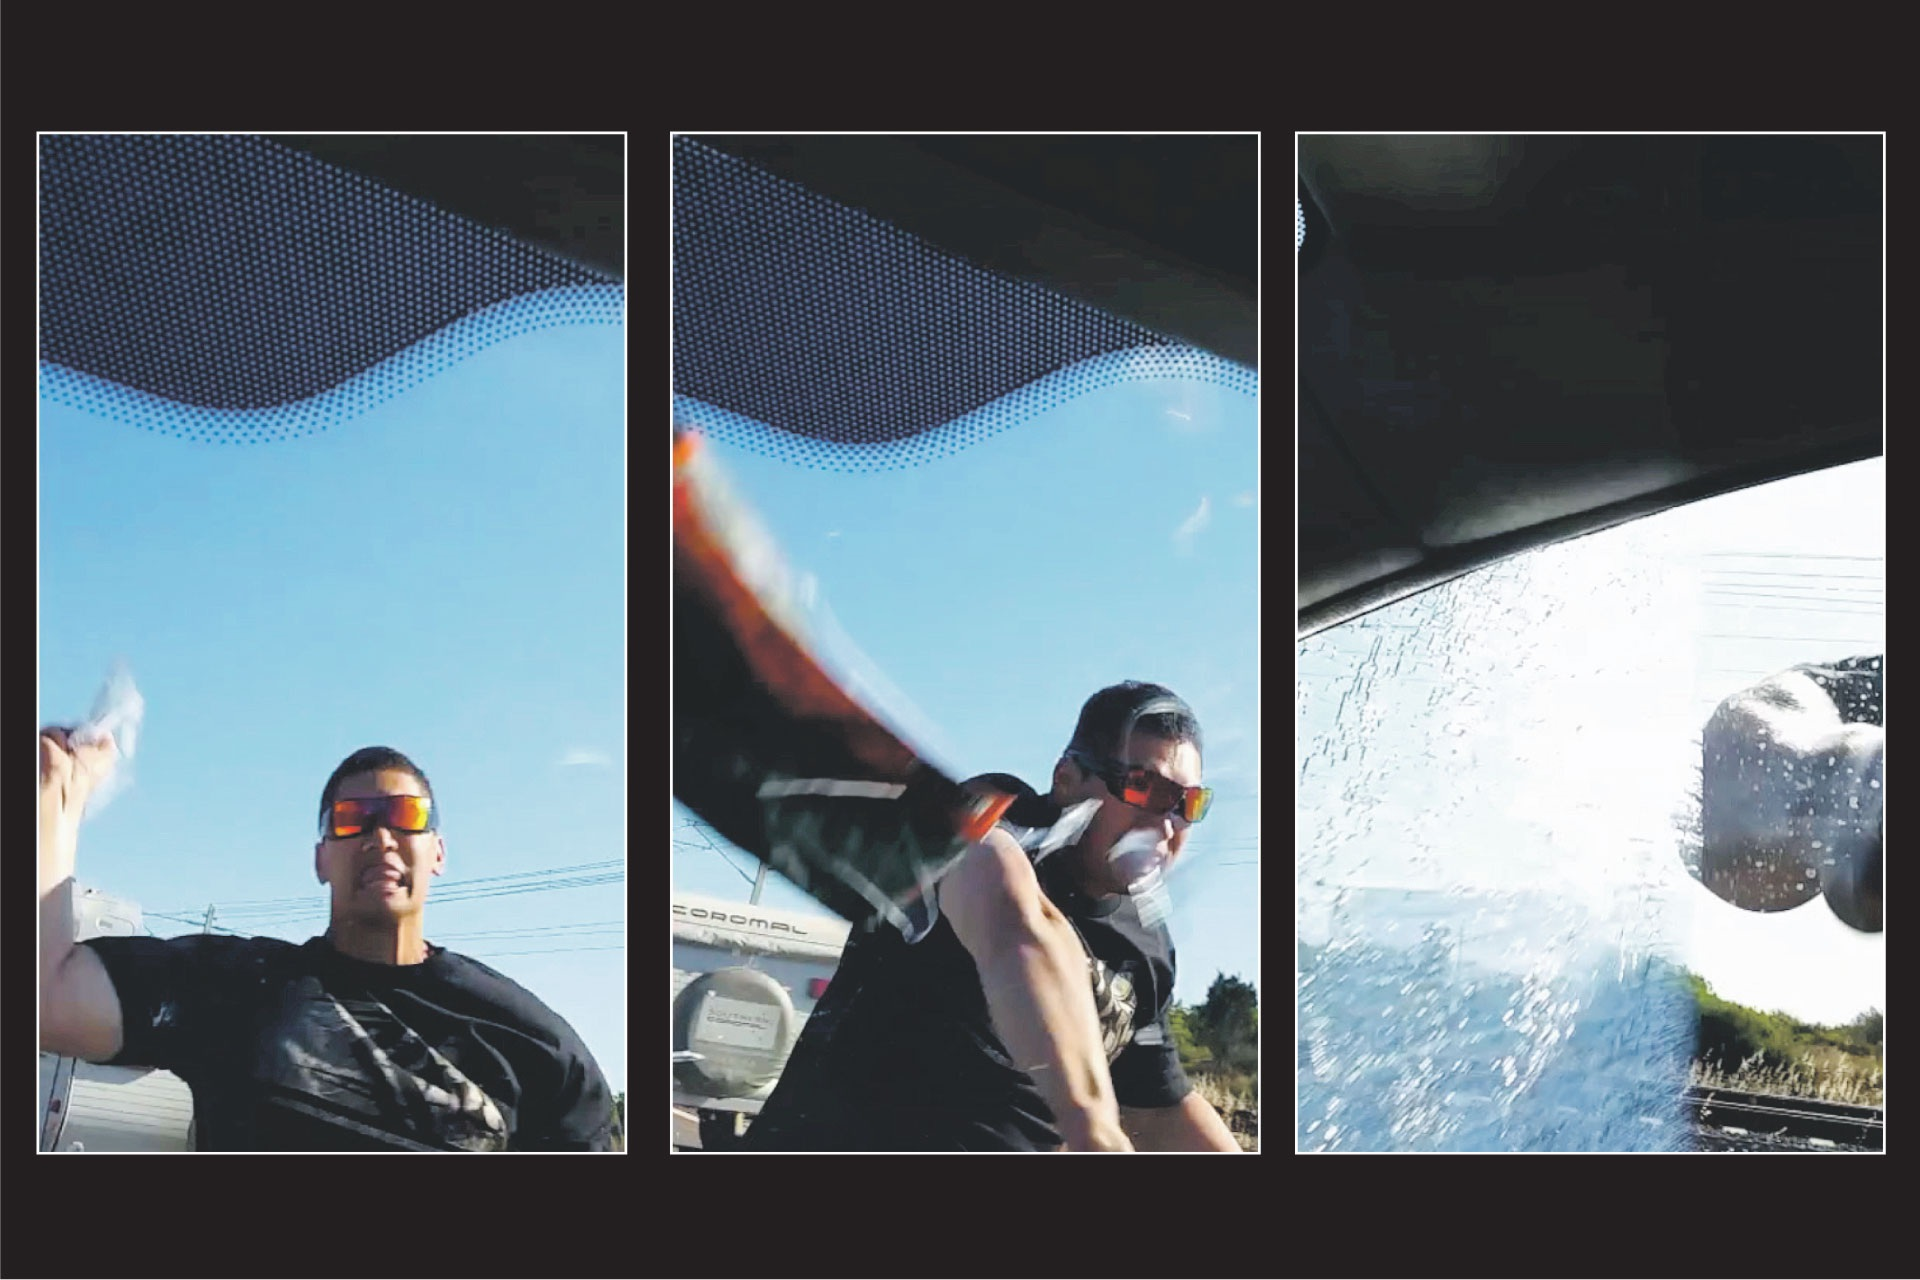 A series of stills from the road rage video.